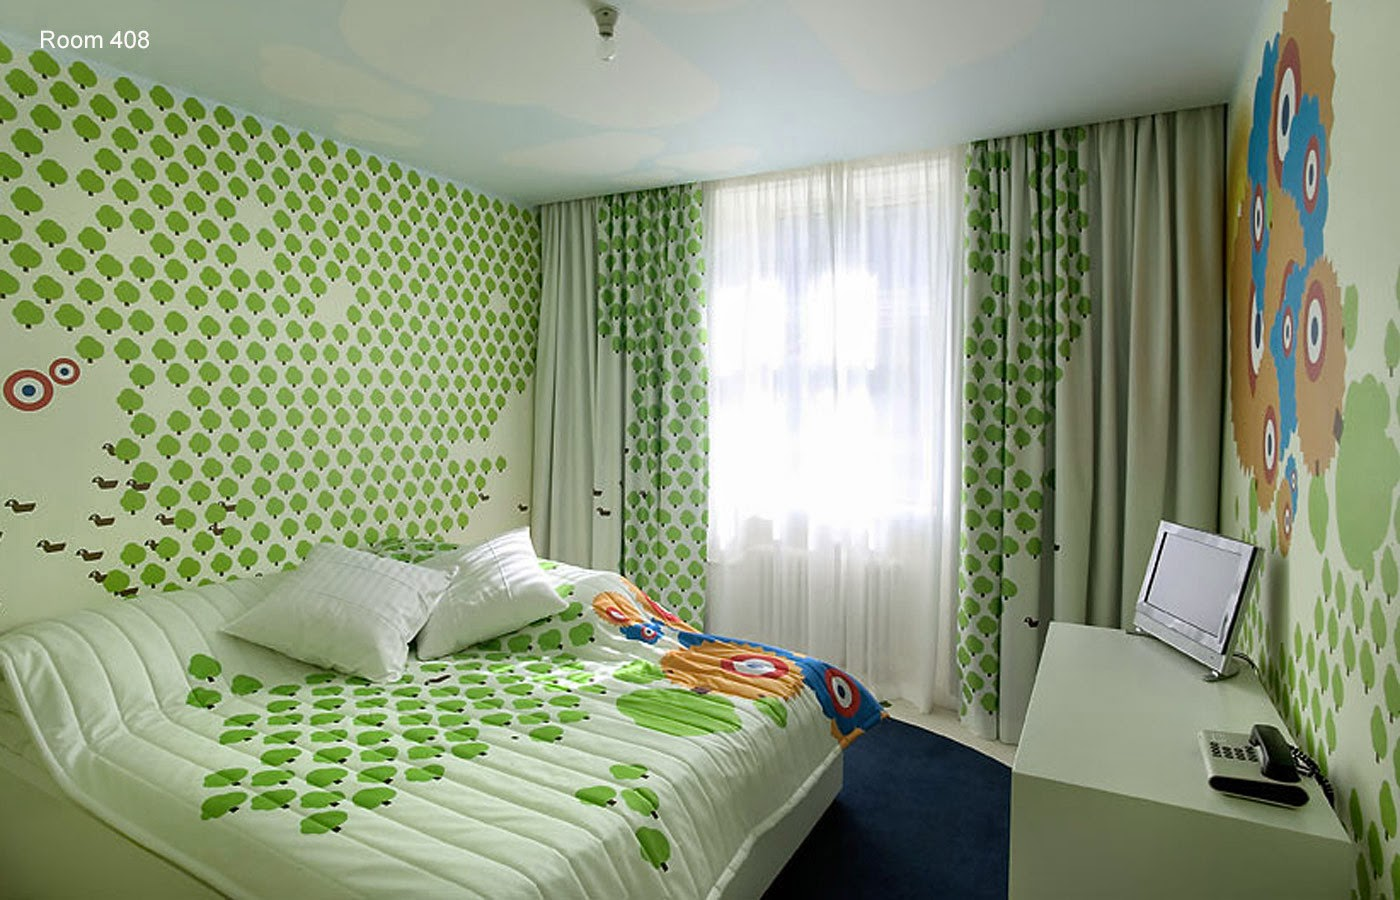 05-Hotel-Fox-Project-Fox-Room Designs-www-designstack-co